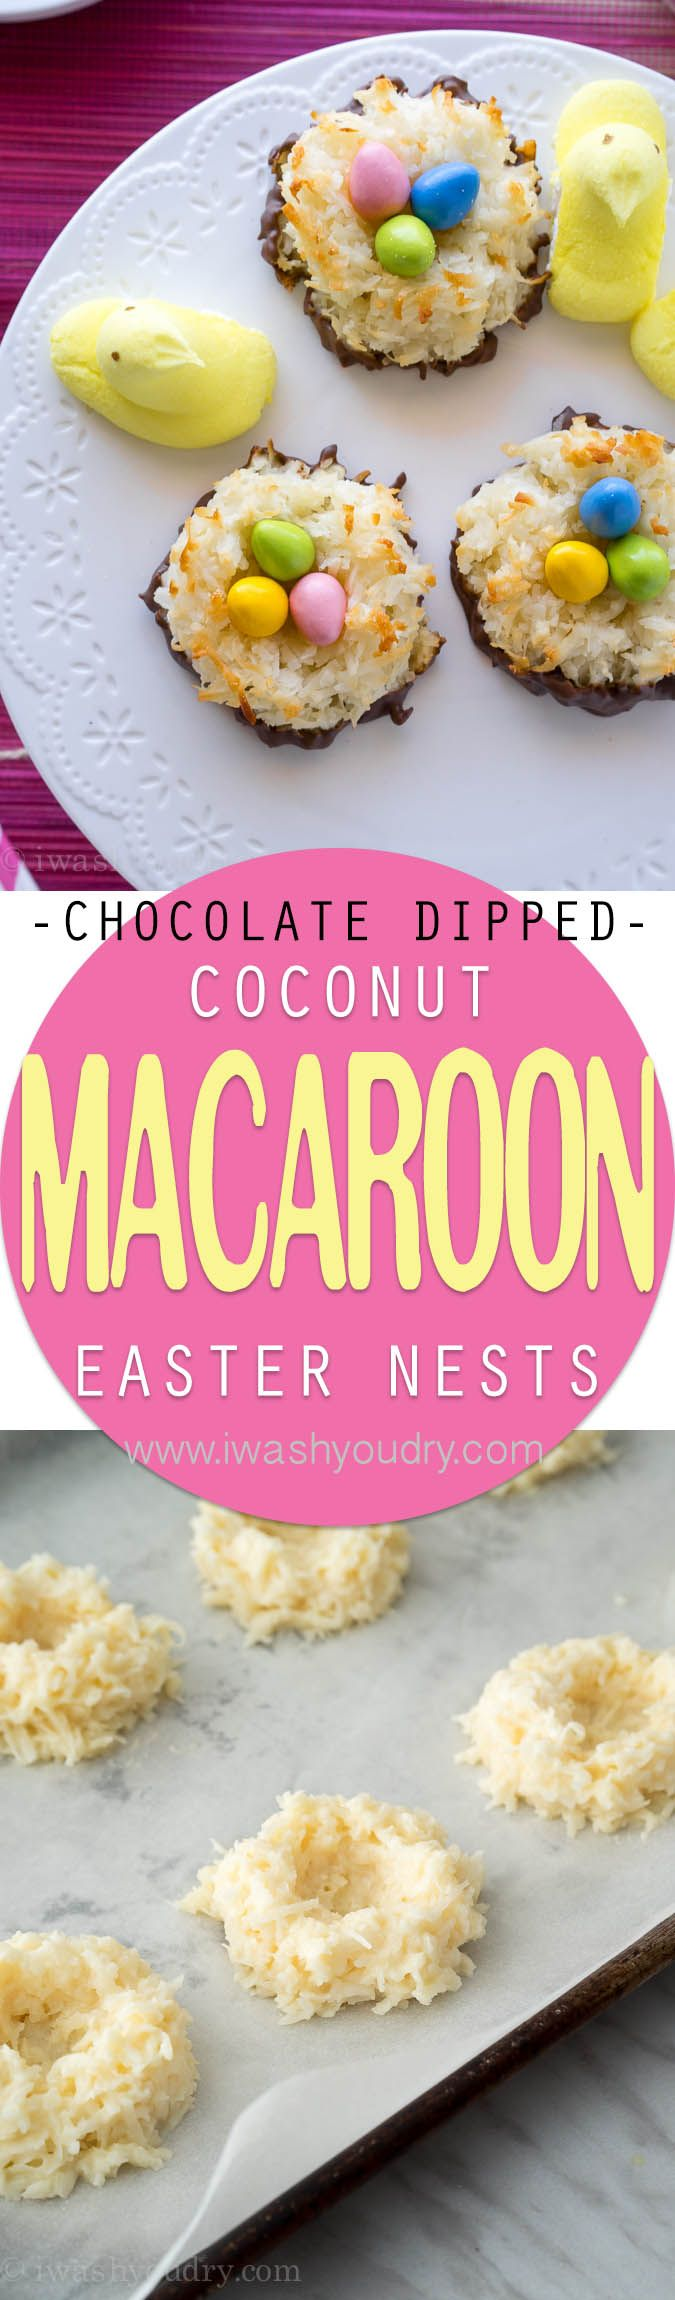 How adorable are these Chocolate Dipped Coconut Macaroon Easter Nests?! They're so easy to make too!